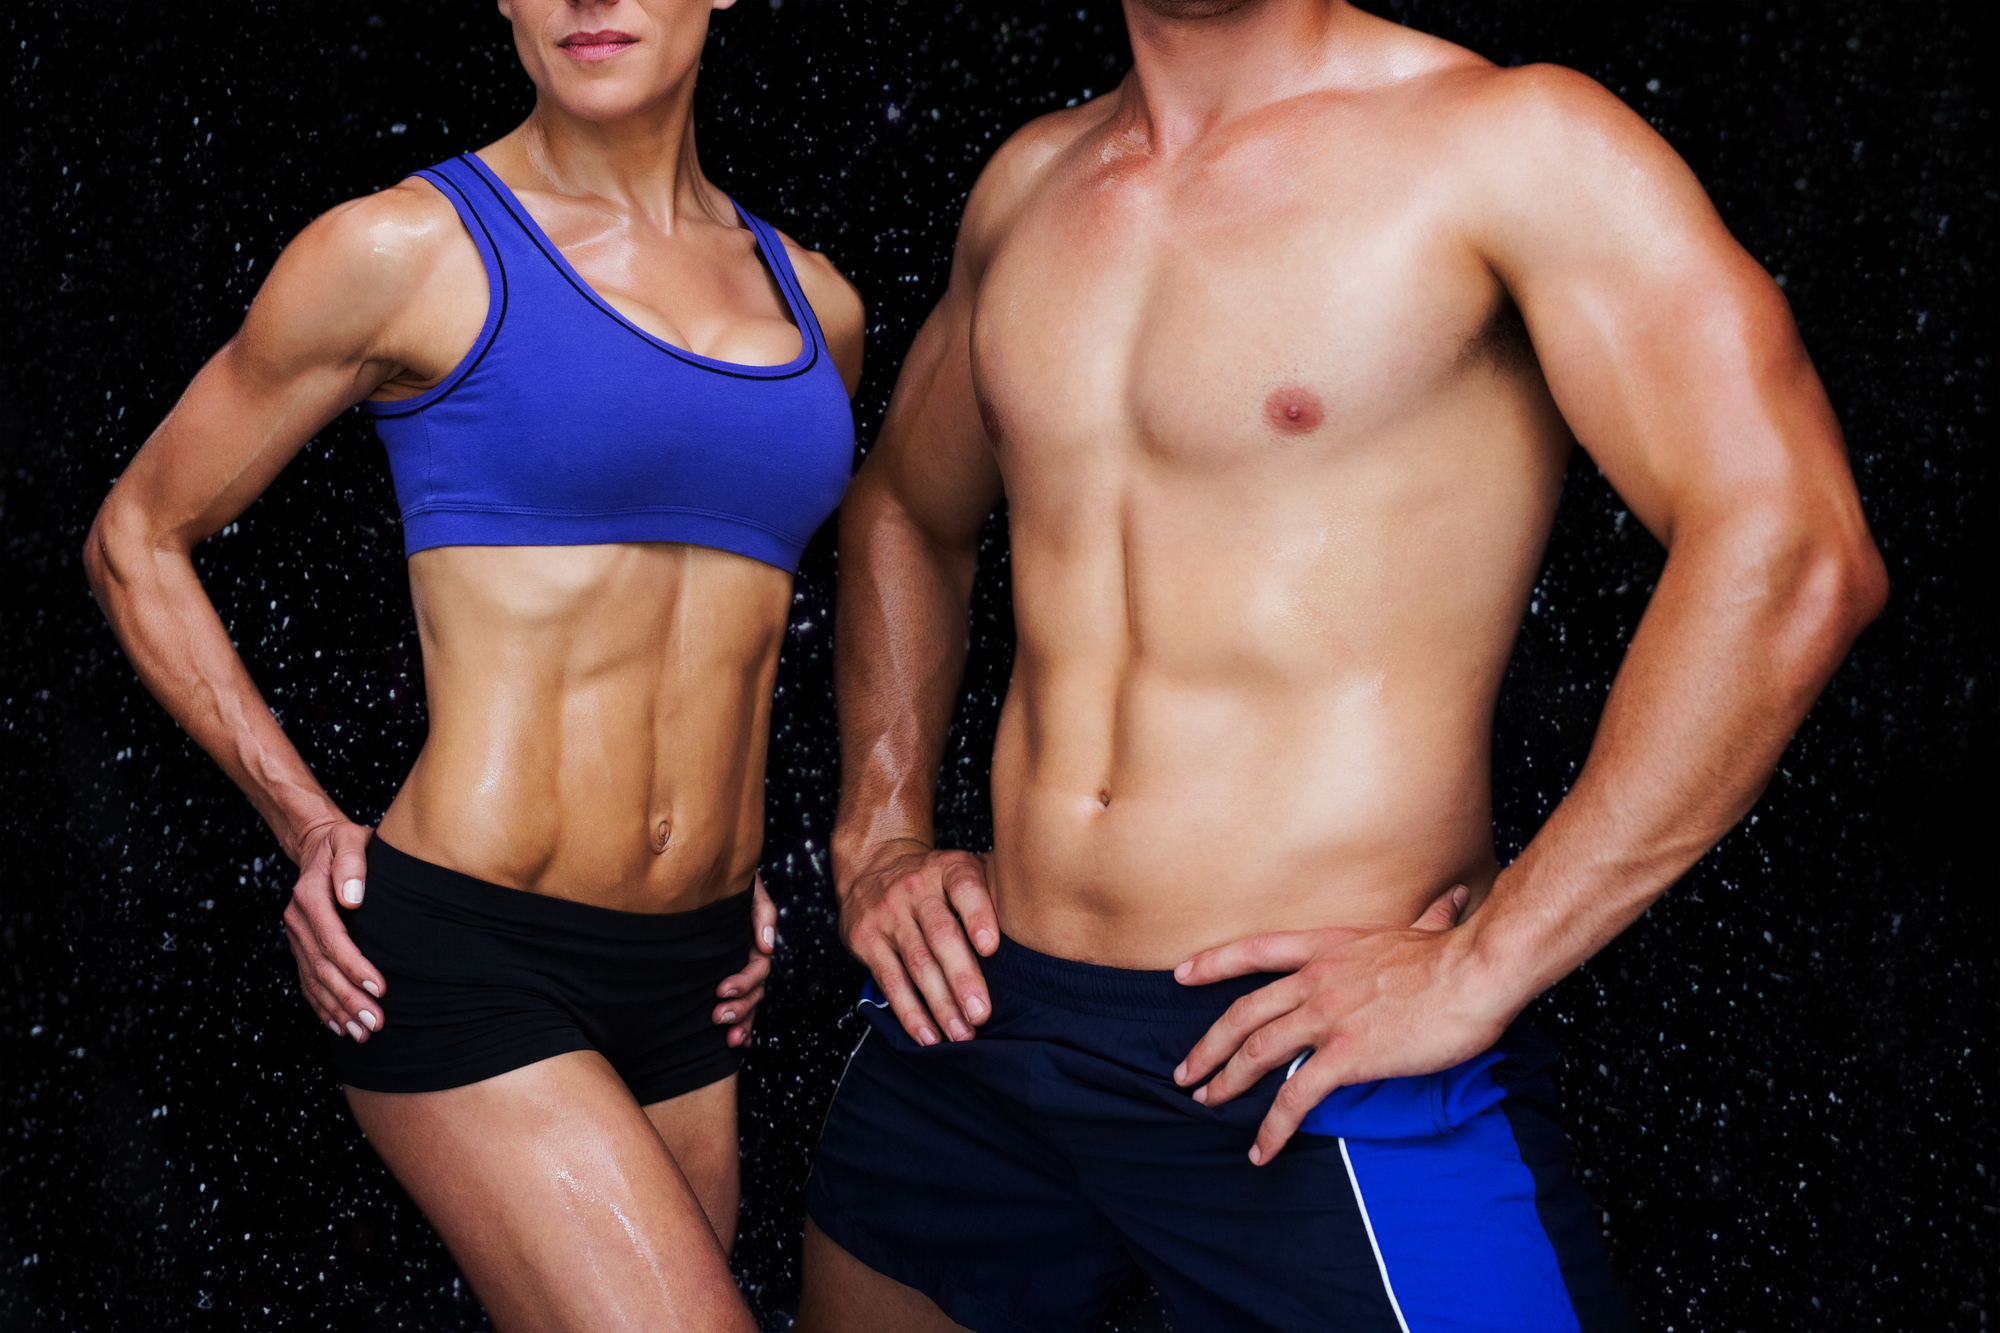 Bodybuilding couple against black background